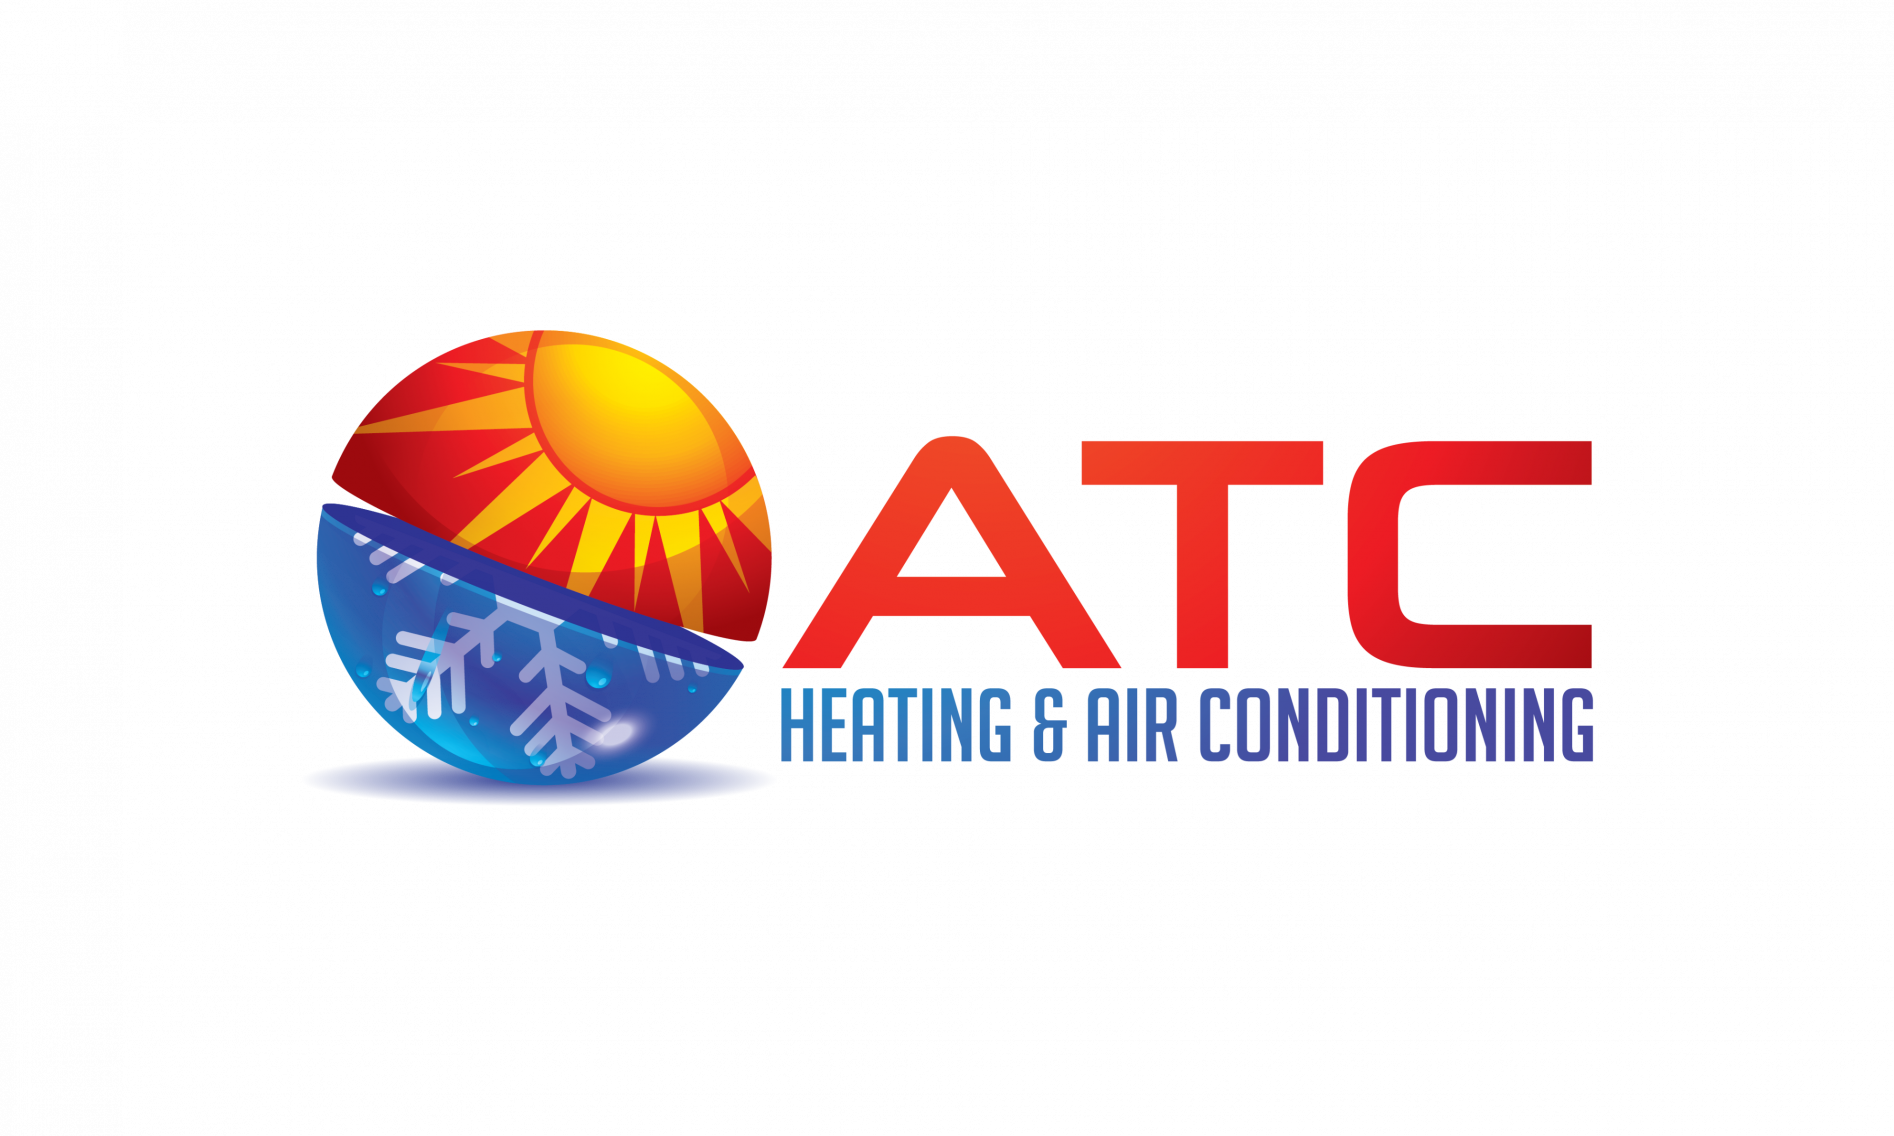 ATC Heating & Air Conditioning Is Now Providing 24/7 AC Repair Services in Los Angeles During Covid-19